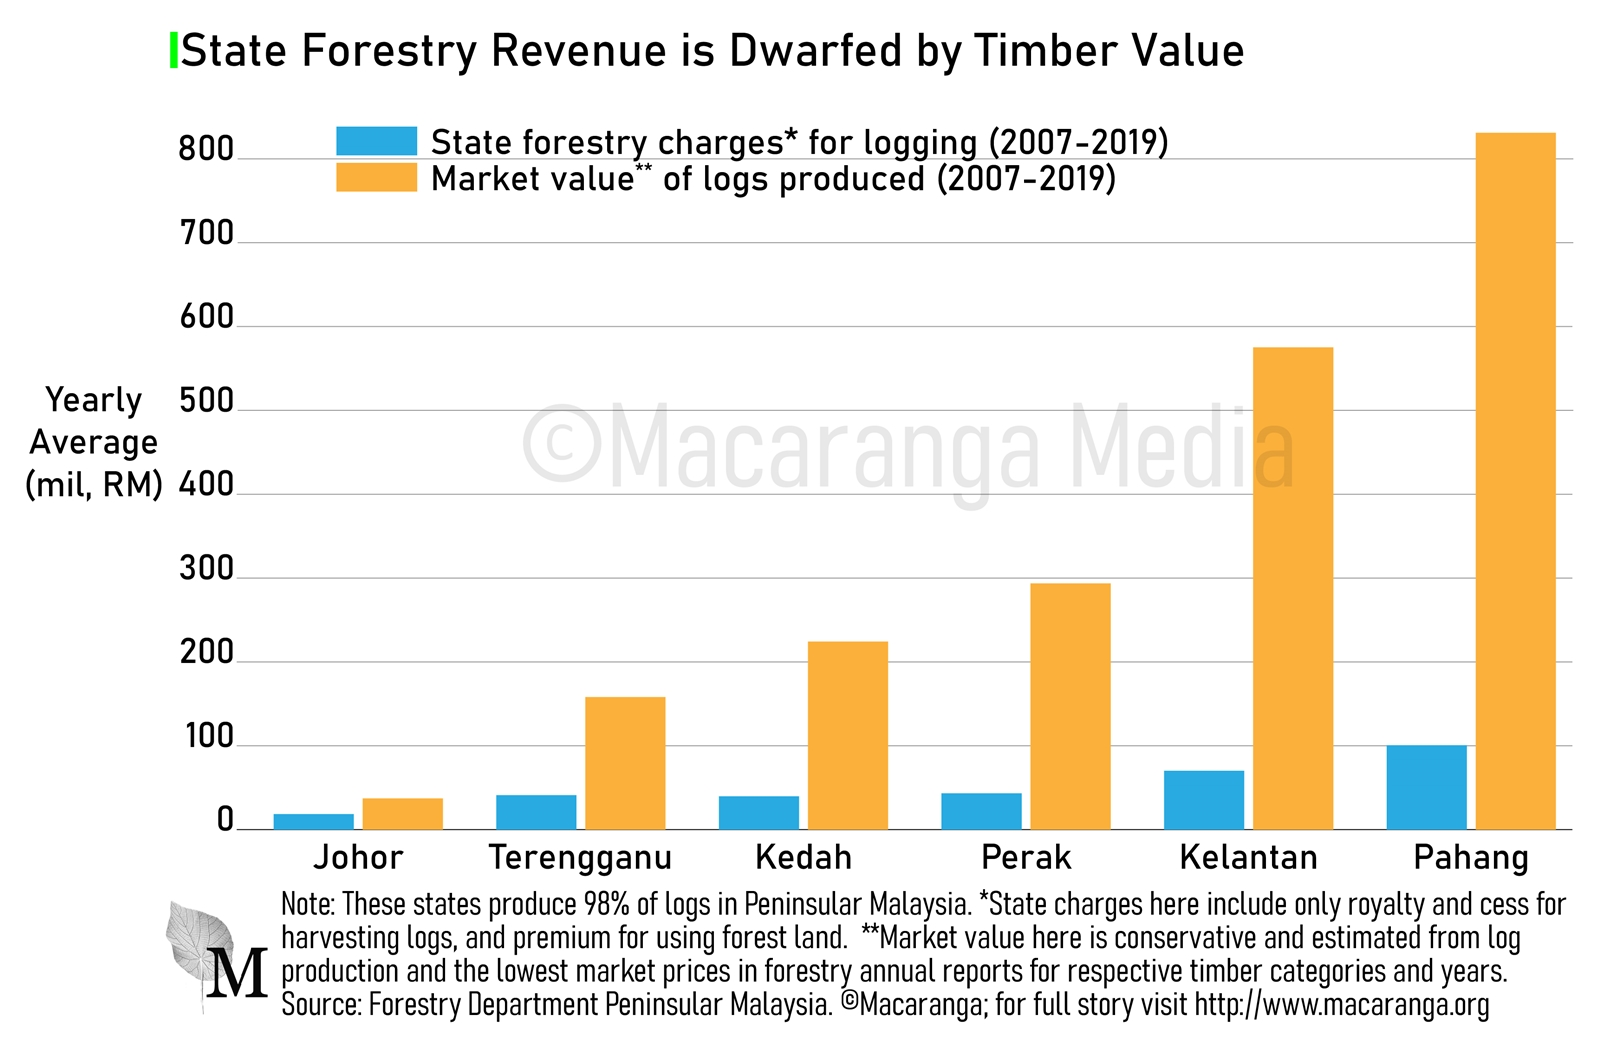 State forestry revenue in Peninsular Malaysia has been several times lower than timber value (Macaranga).